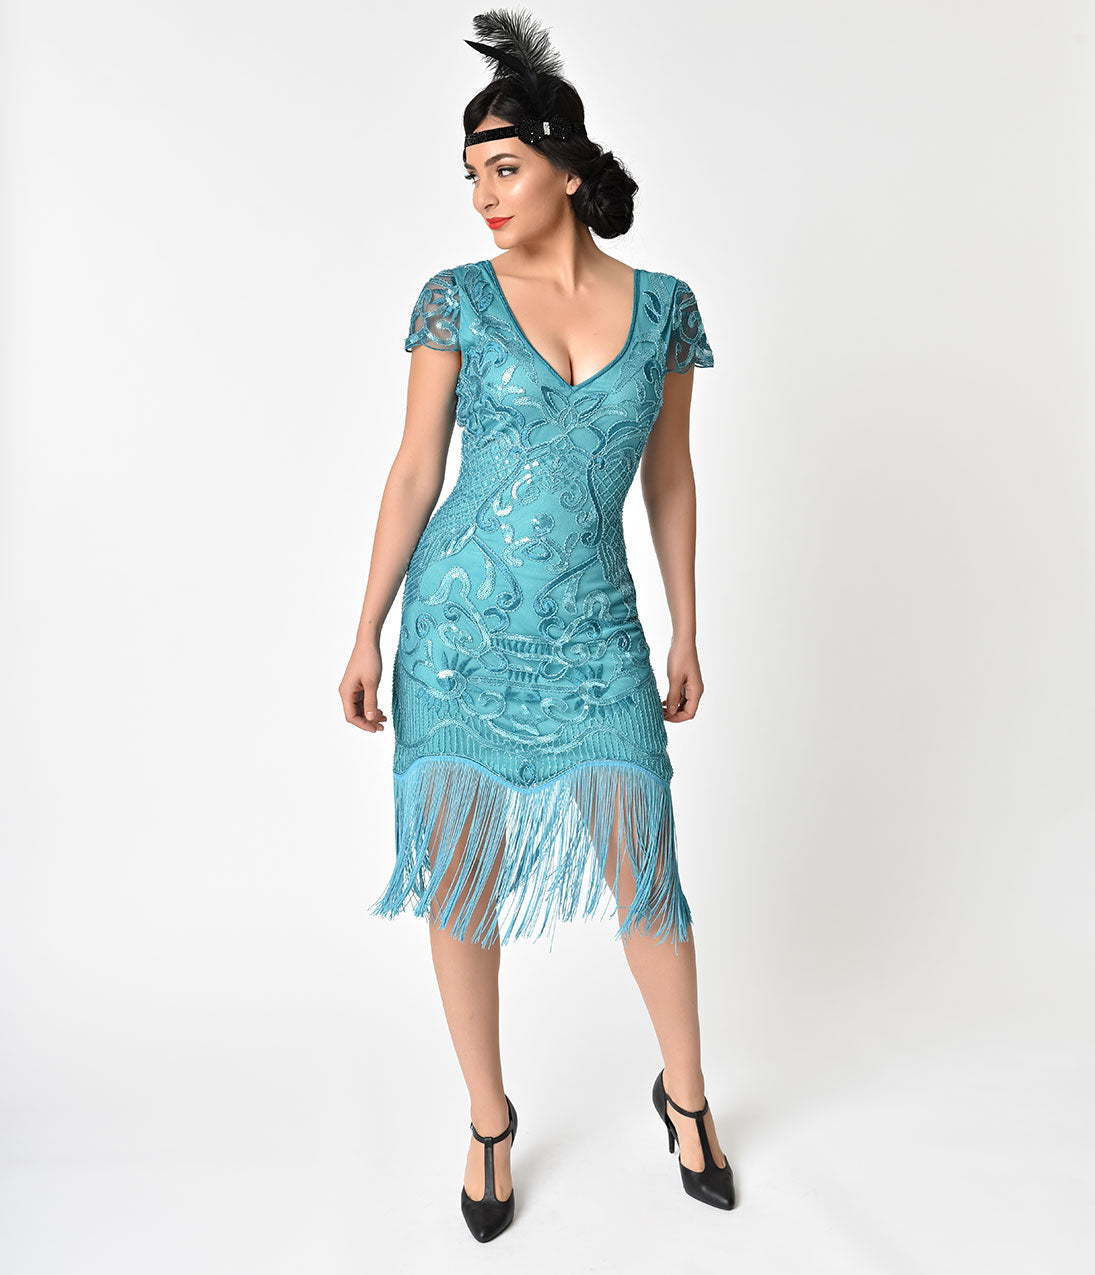 863ef2a0 1920s Style Dresses, 20s Dresses Unique Vintage 1920S Style Turquoise Beaded  Fringe Aurore Flapper Dress